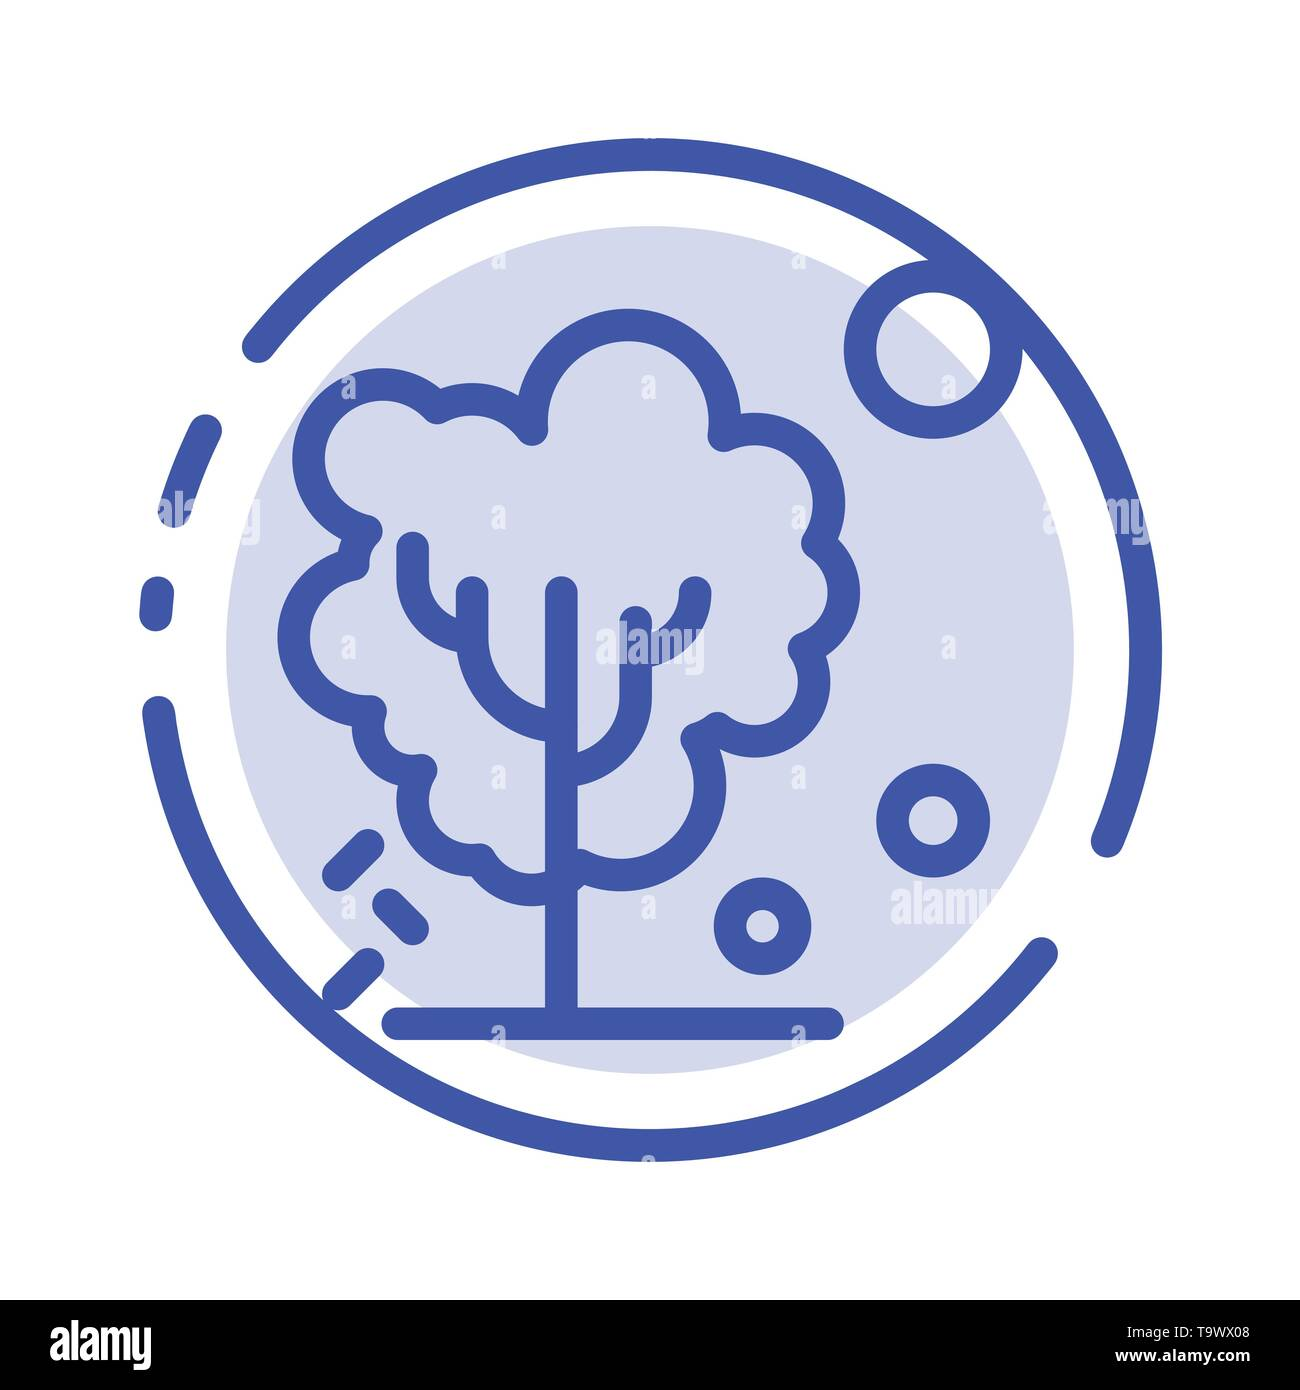 Dry, Global, Soil, Tree, Warming Blue Dotted Line Line Icon - Stock Image